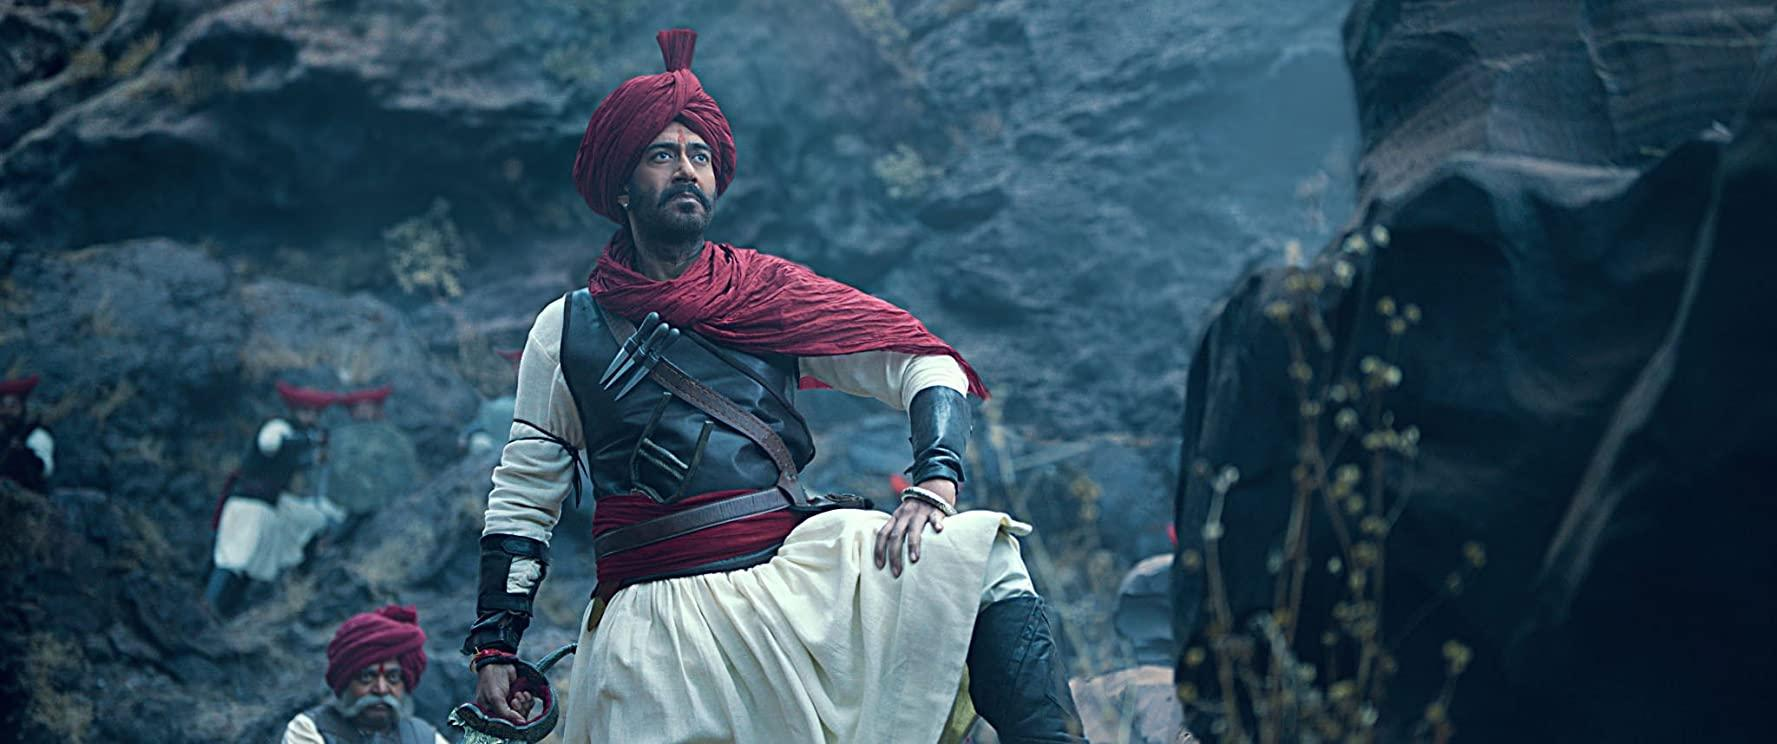 مشاهدة فيلم Tanhaji The Unsung Warrior (2020) مترجم HD اون لاين